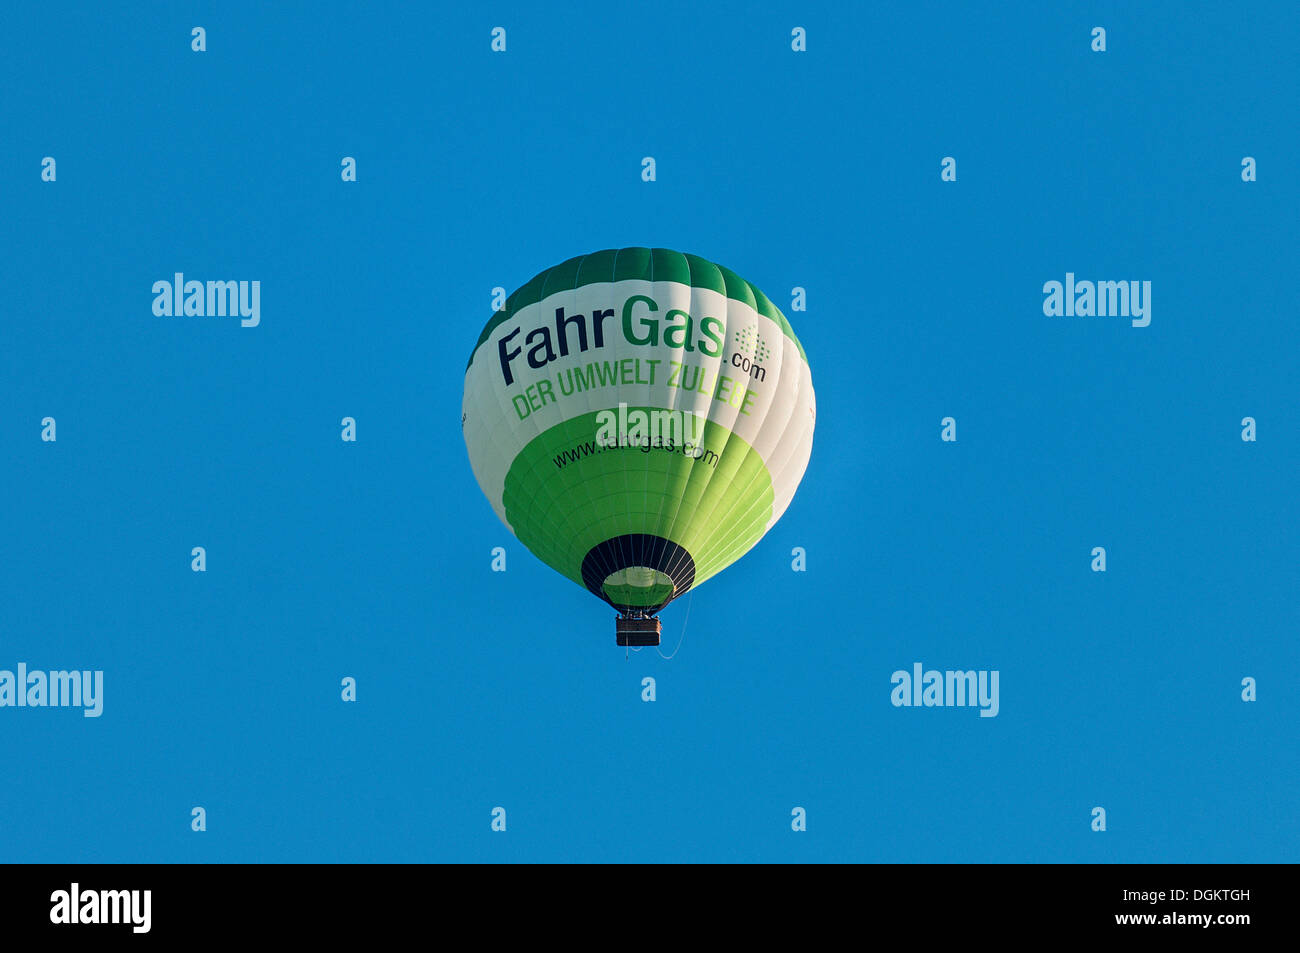 Hot air balloon, lettering Fahrgas.com, an initiative to modify cars to run on LPG, Liquefied Petroleum Gas - Stock Image